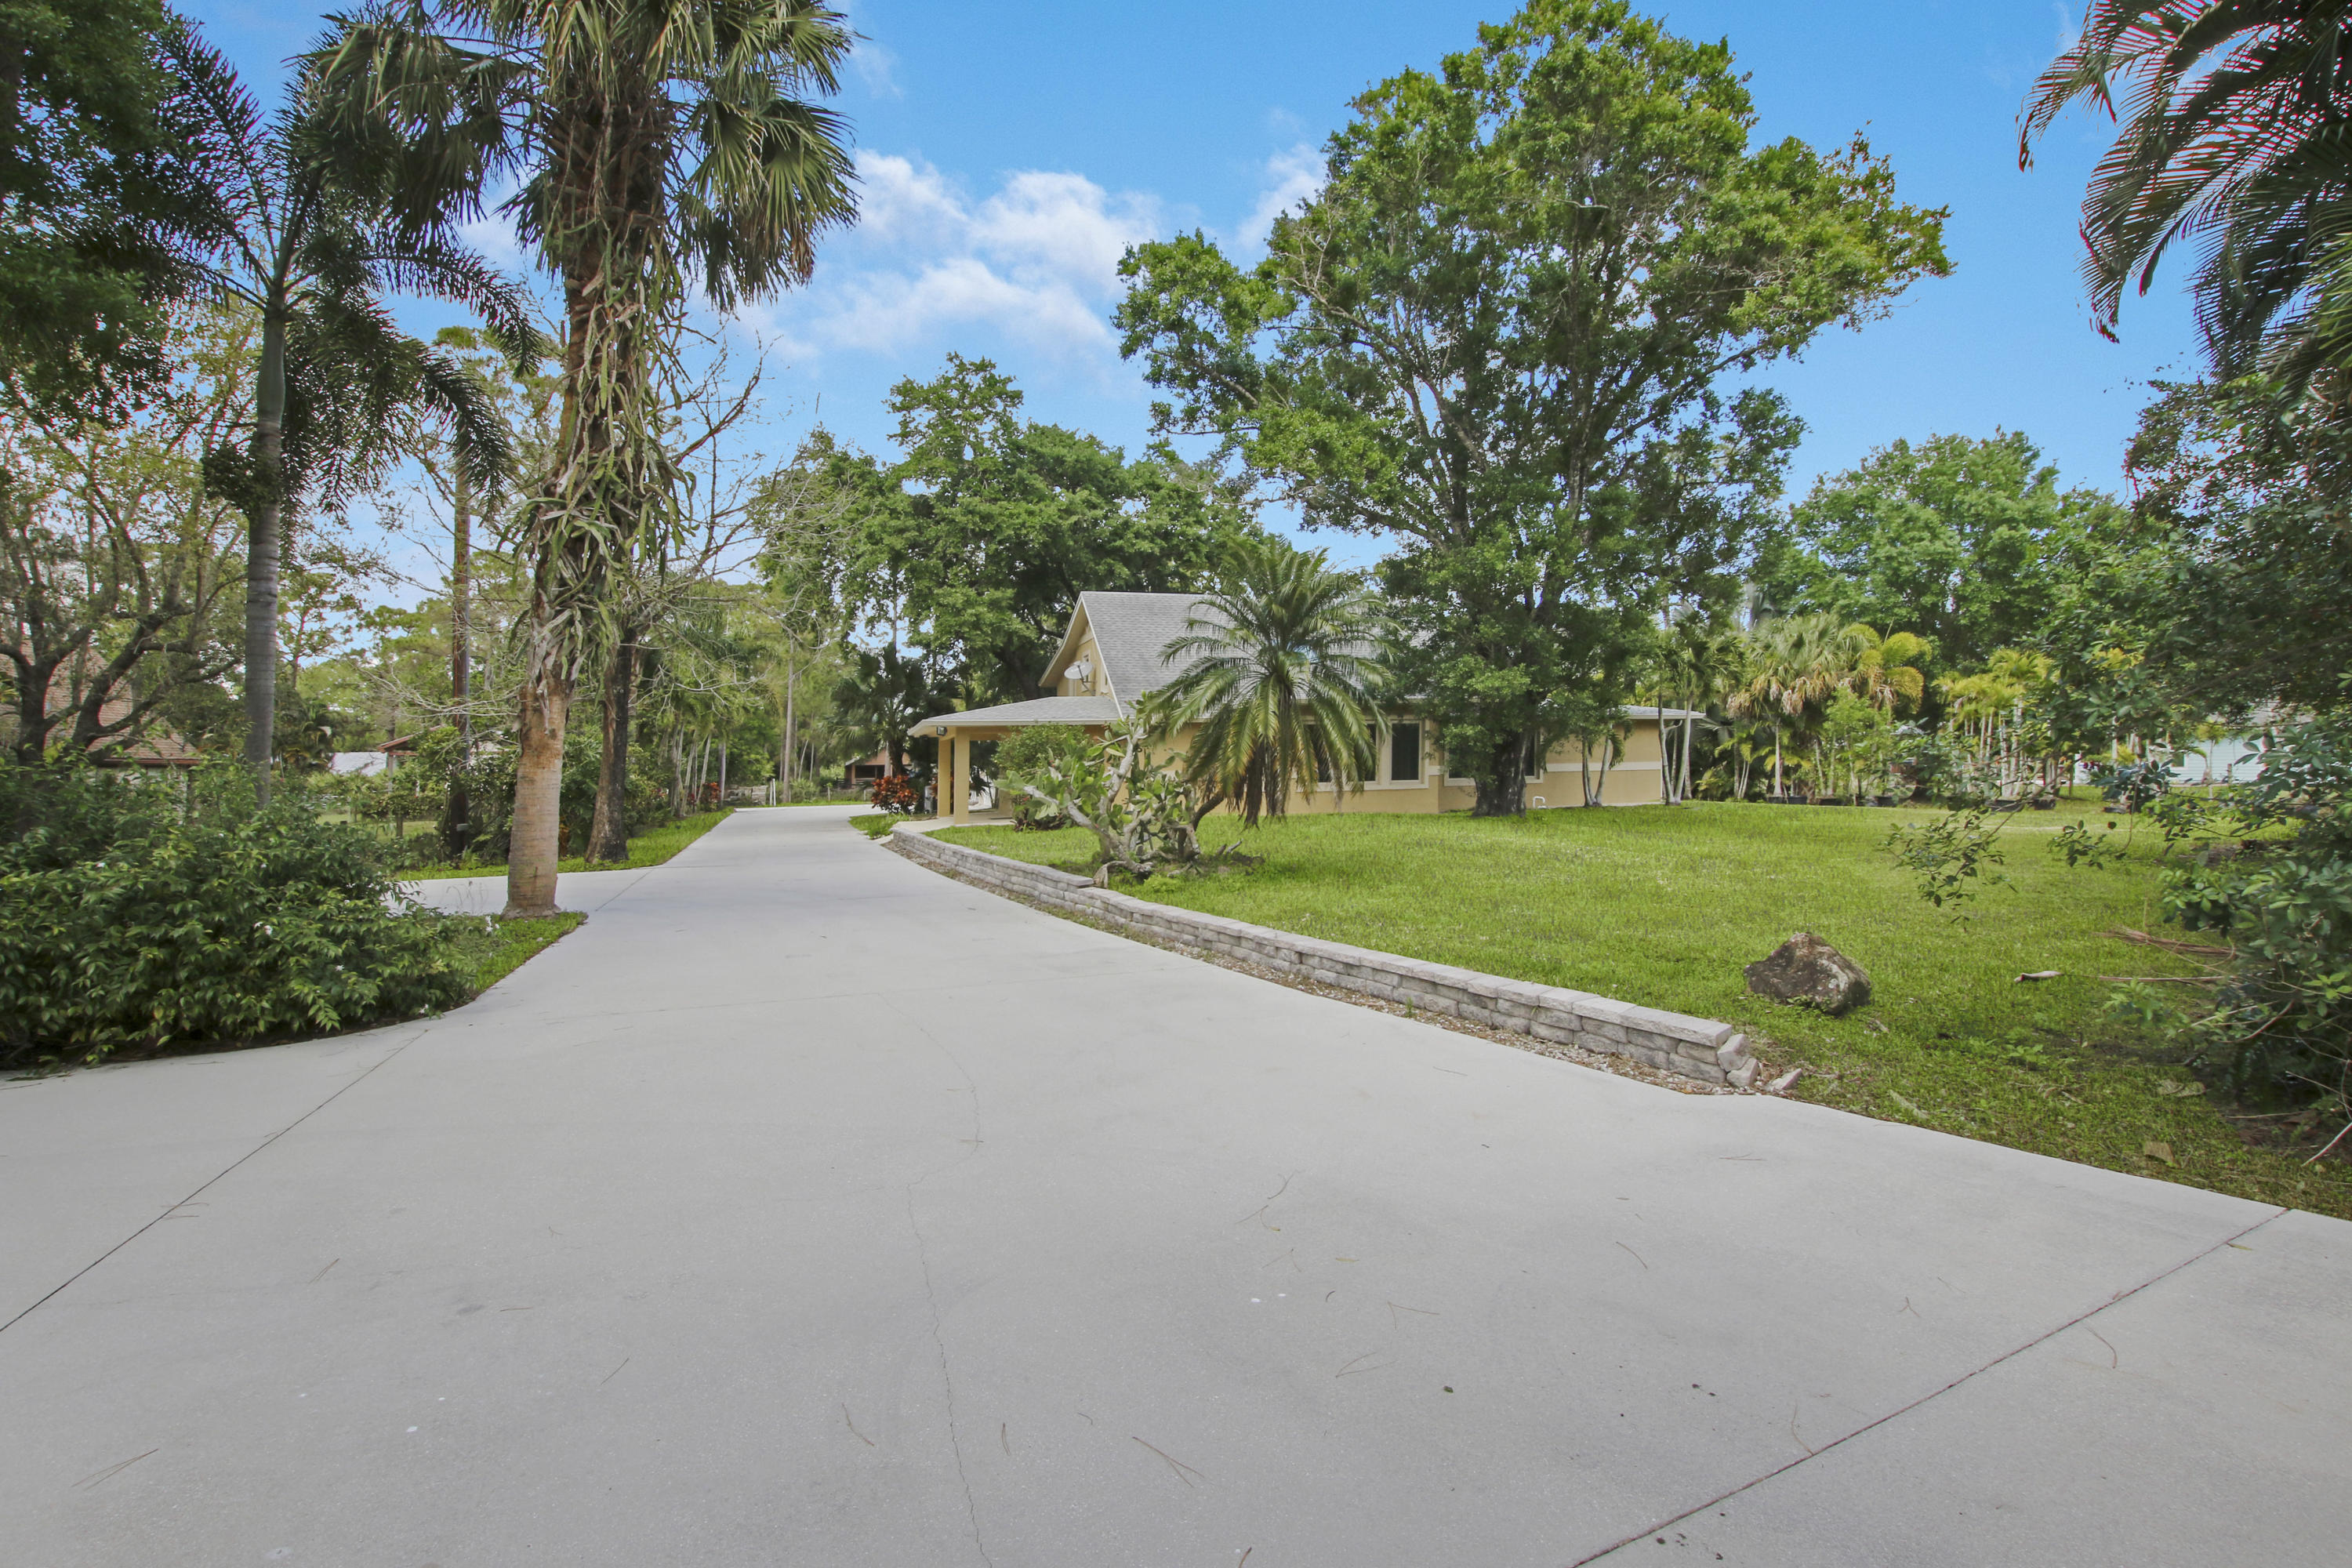 EXTERIOR DRIVEWAY TO FRONT